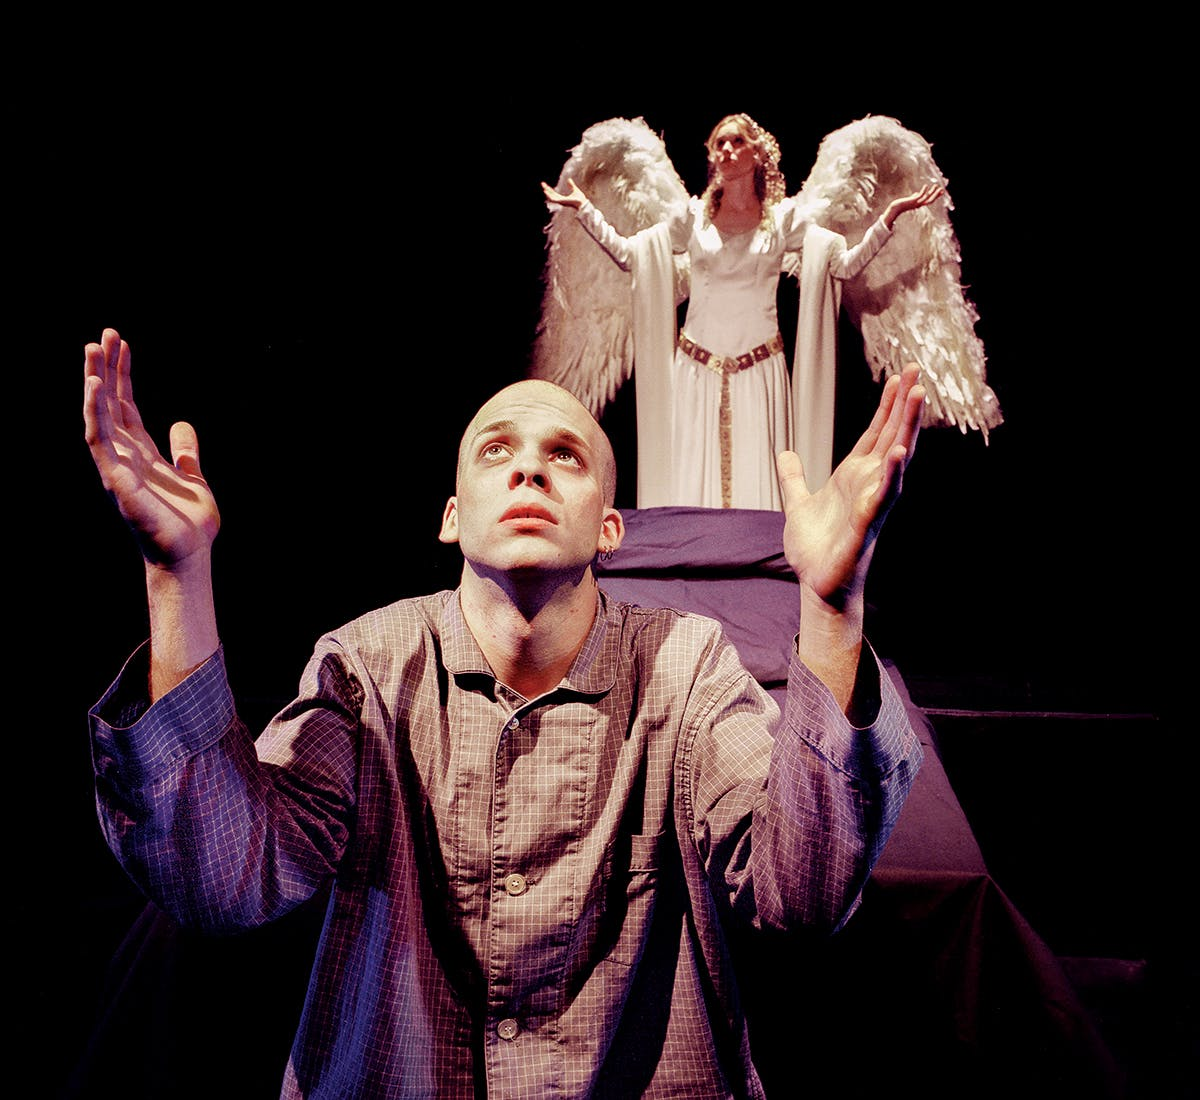 Ferris Craddock (foreground) as Prior Walter and Rainie Davis as the Angel on October 15, 1999.